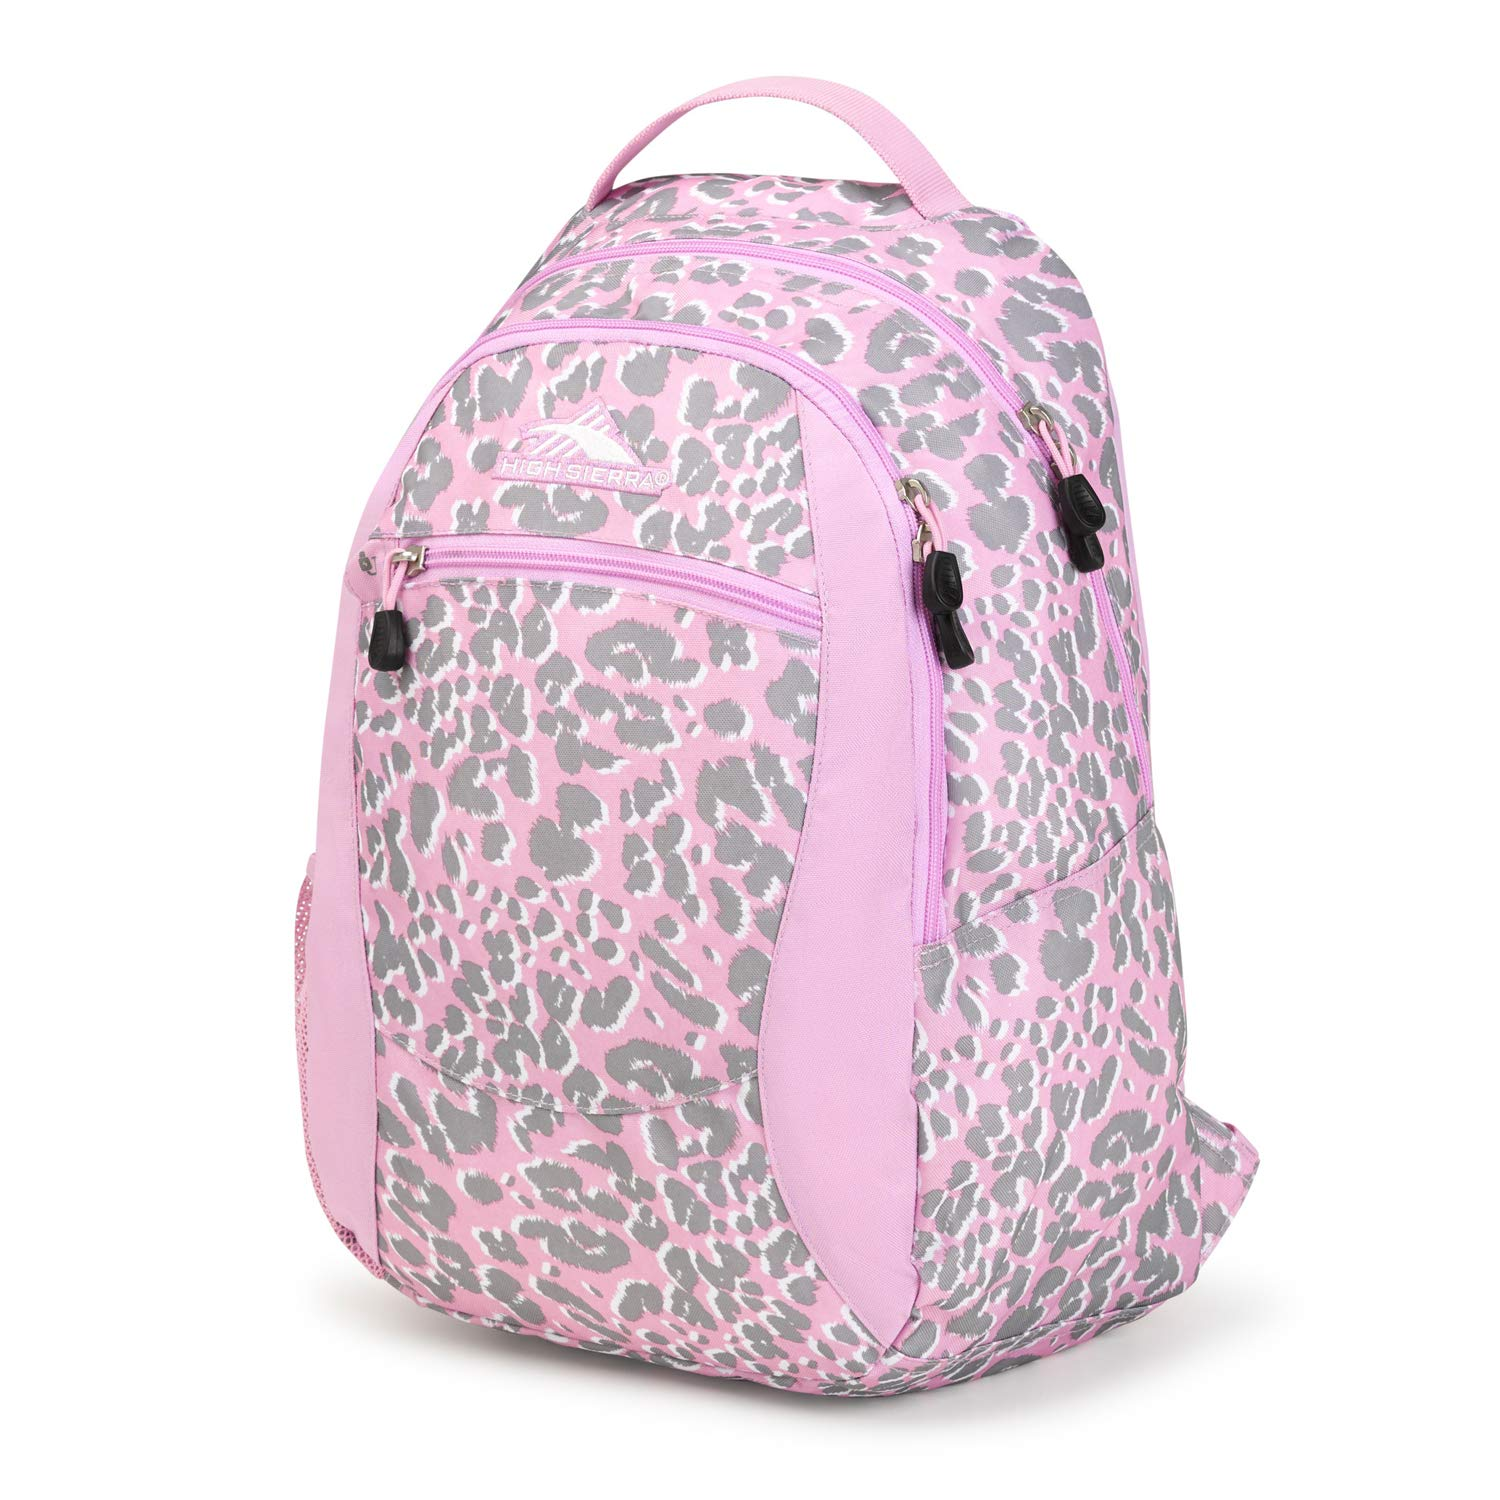 High Sierra Curve Lightweight and Compact Student Backpack - Stylish Bookbag or Lunch Backpack for Children, Teens, or Adults - Unisex Campus Backpack (Shadow Leopard/Iced Lilac) by High Sierra